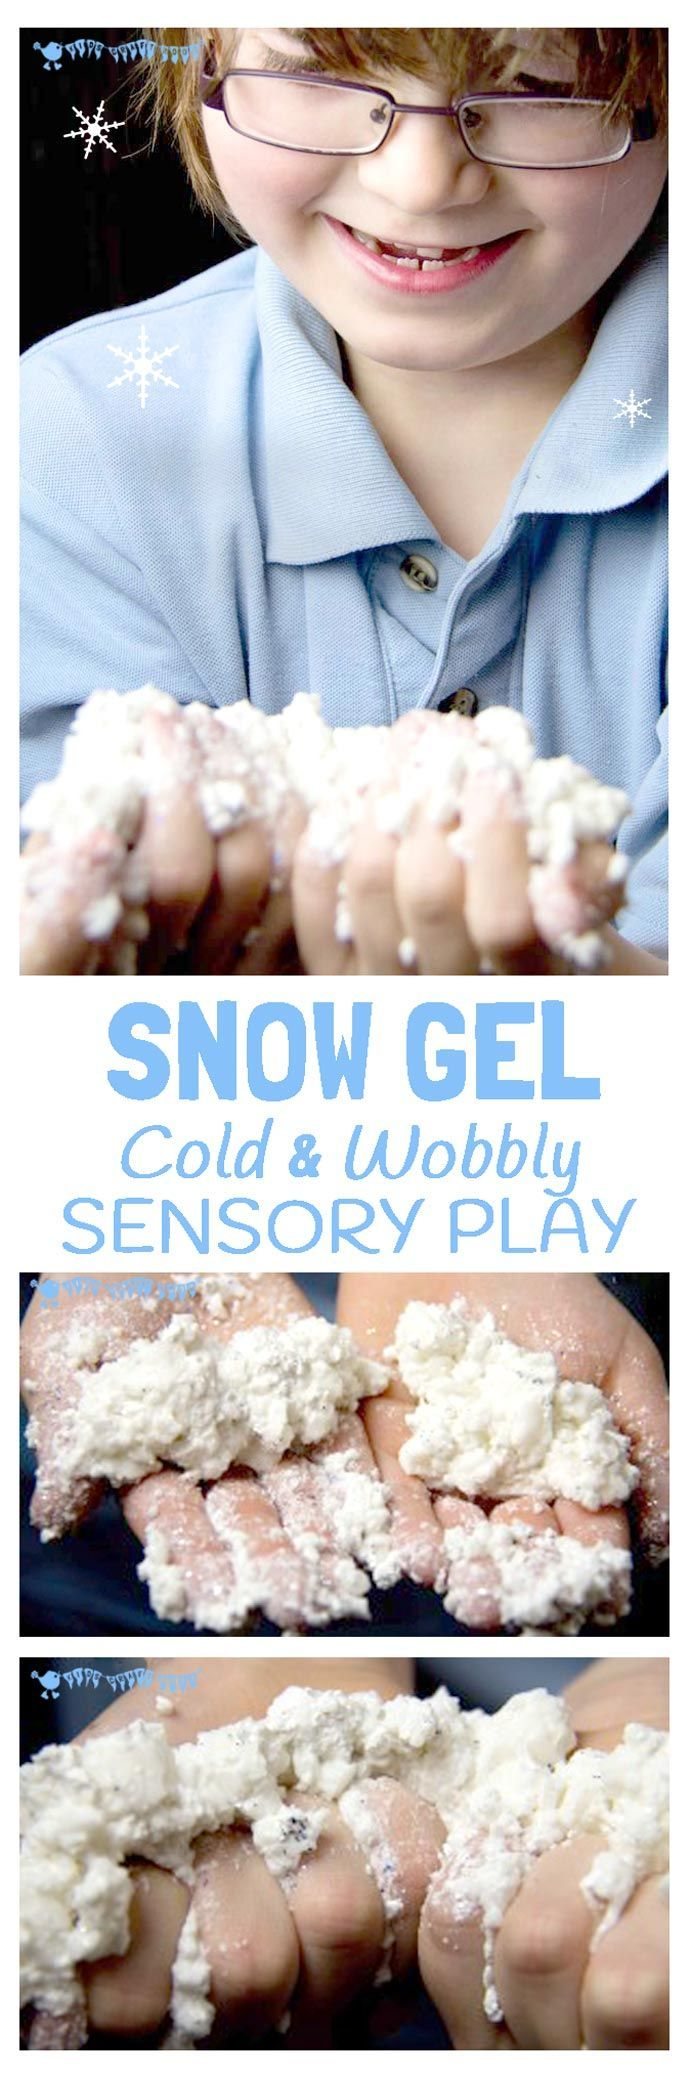 WINTER SENSORY PLAY SNOW GEL - Cold, wobbly, sparkly Snow Gel; a wonderfully rich Winter sensory play experience for kids.